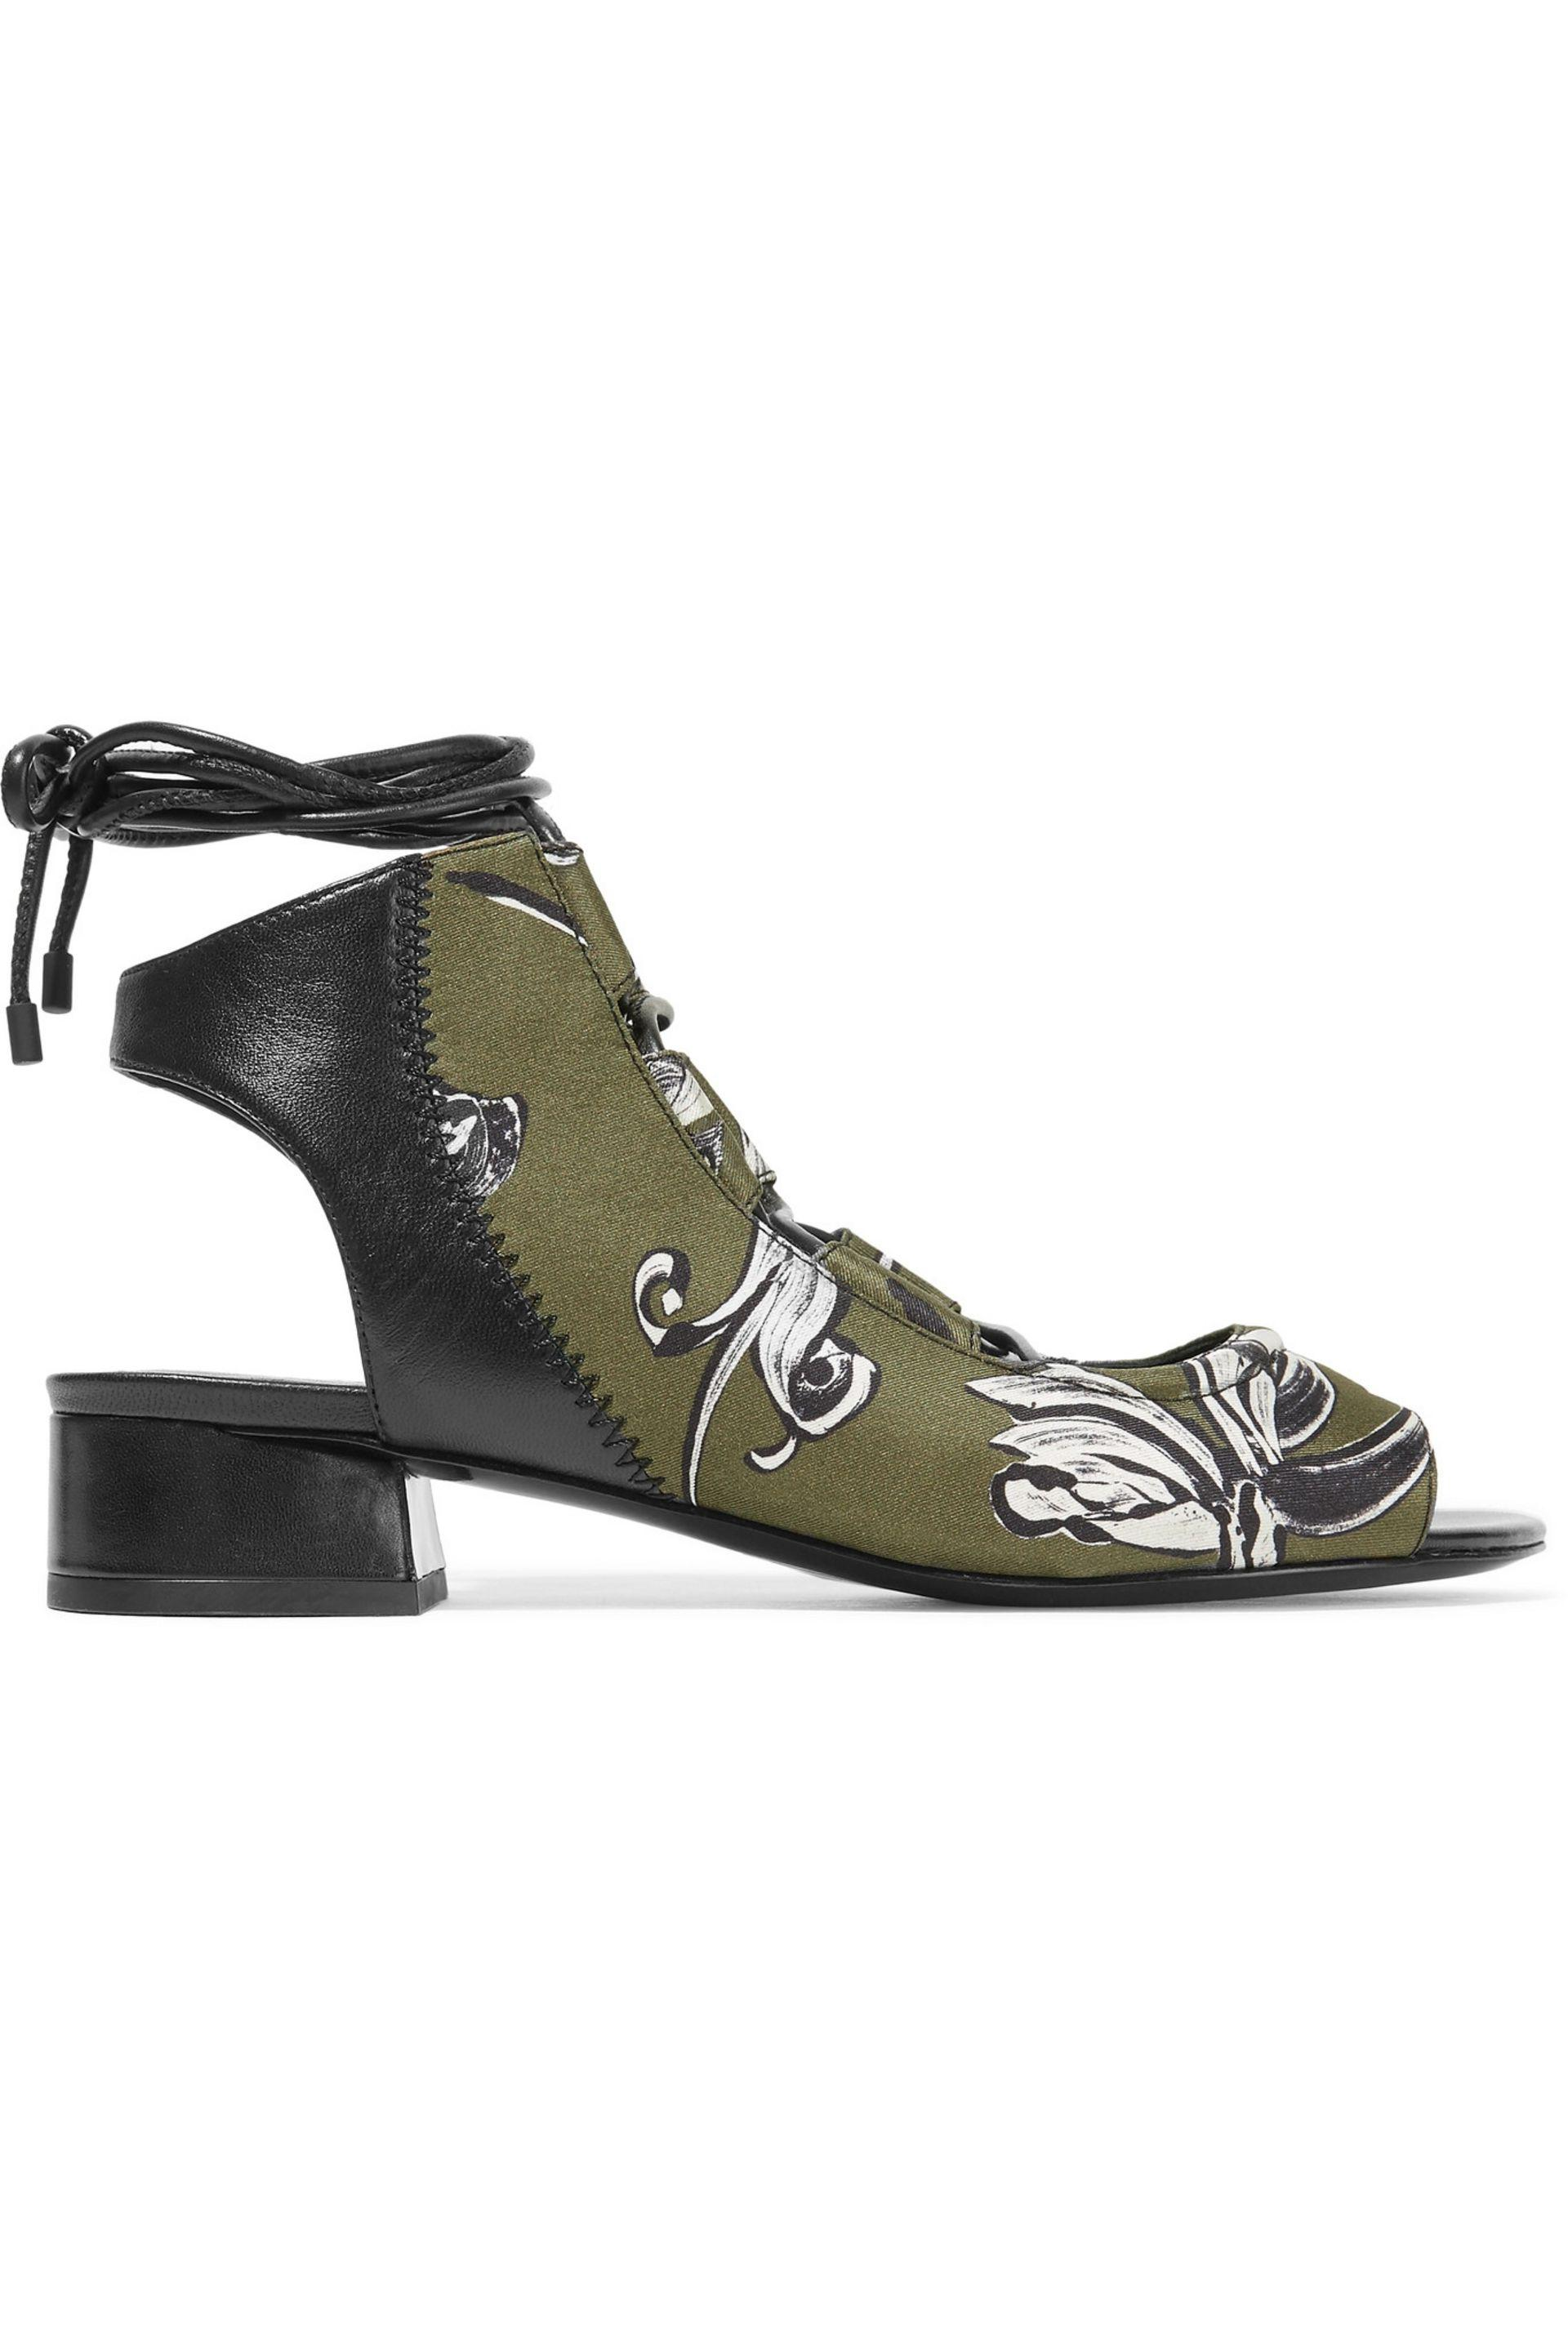 3.1 Phillip Lim. Women's Green Drum Lace-up Leather And Printed Neoprene  Sandals